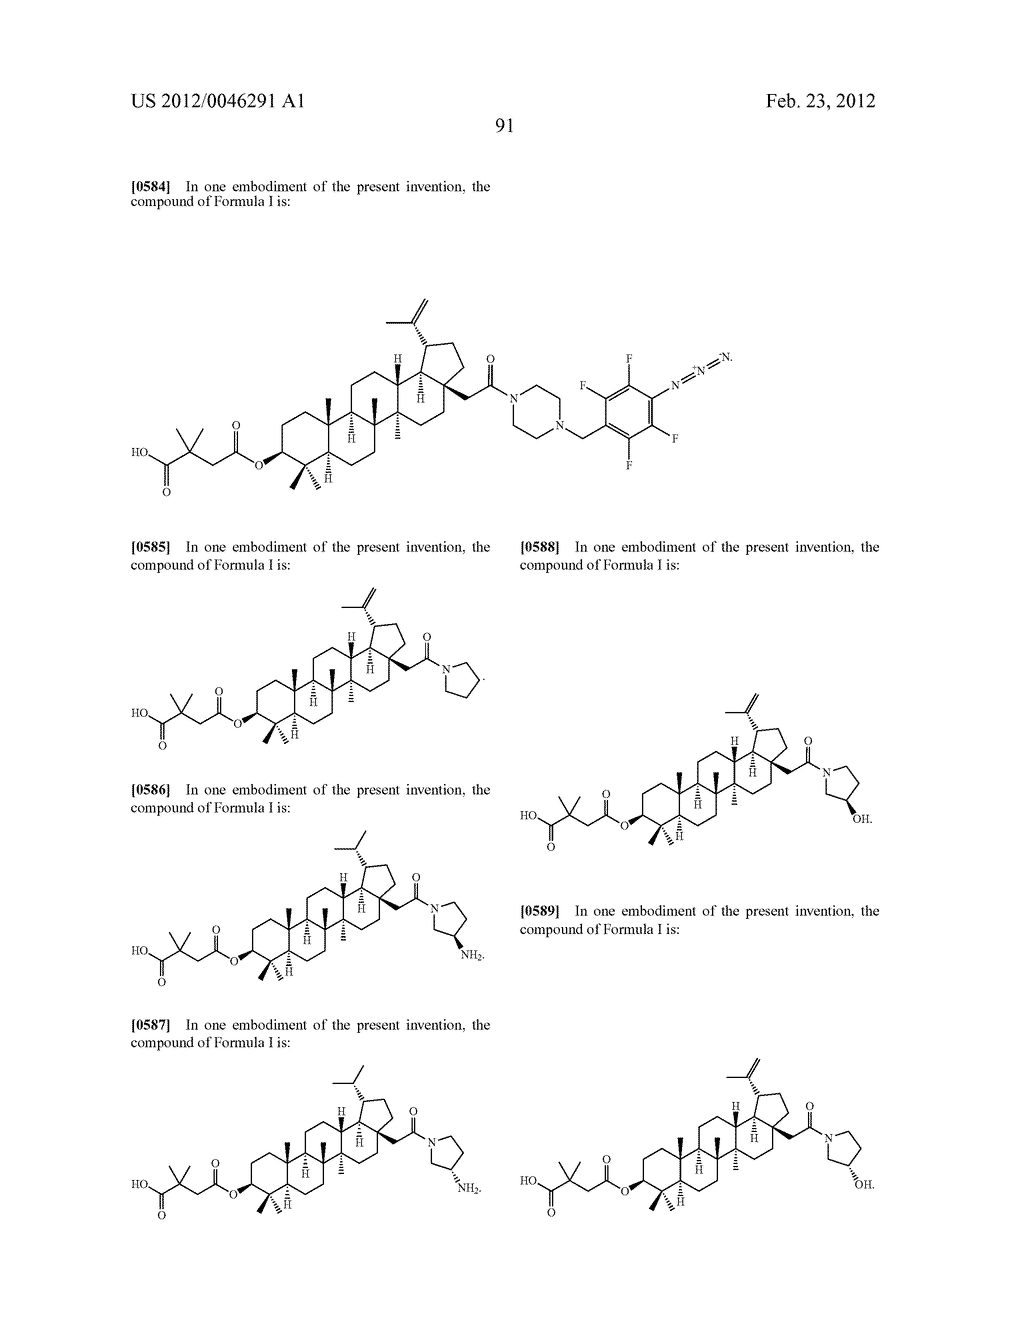 Extended Triterpene Derivatives - diagram, schematic, and image 91